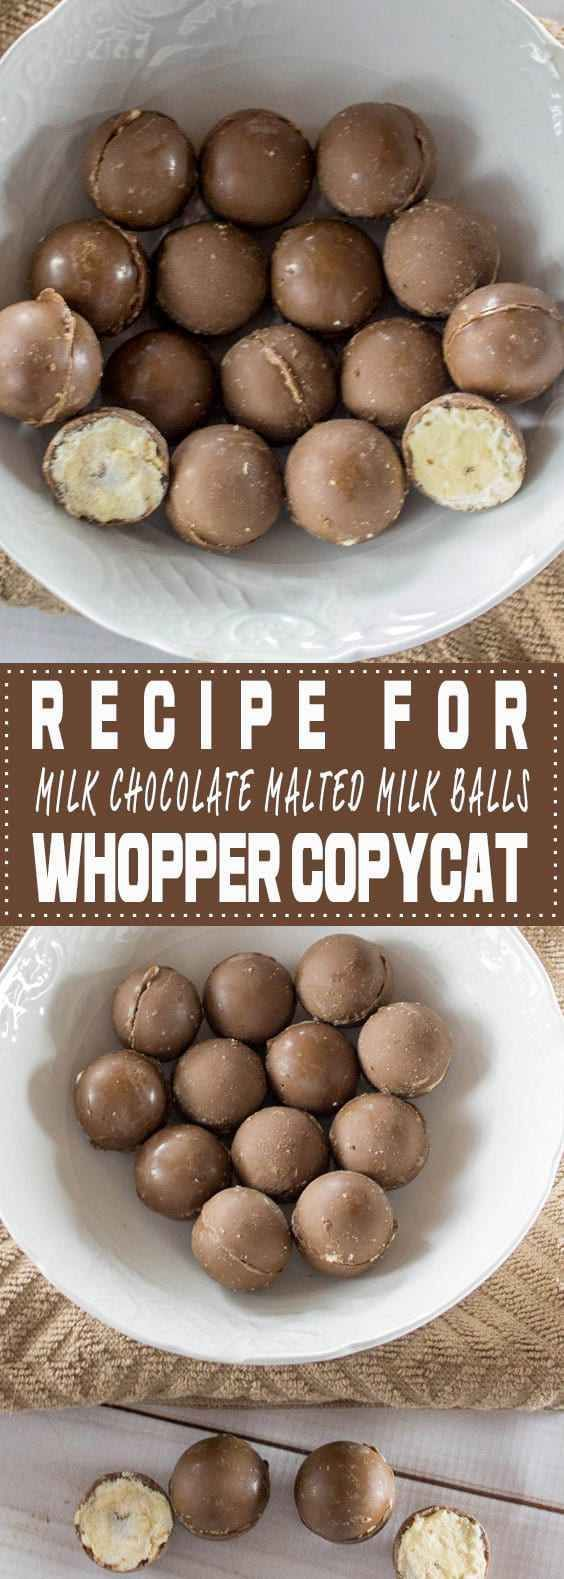 Malted milk balls recipe – Chocolate the whole family will love. The best part… these candy treats require no baking. Discover the secret to a great Whopper copycat recipe.